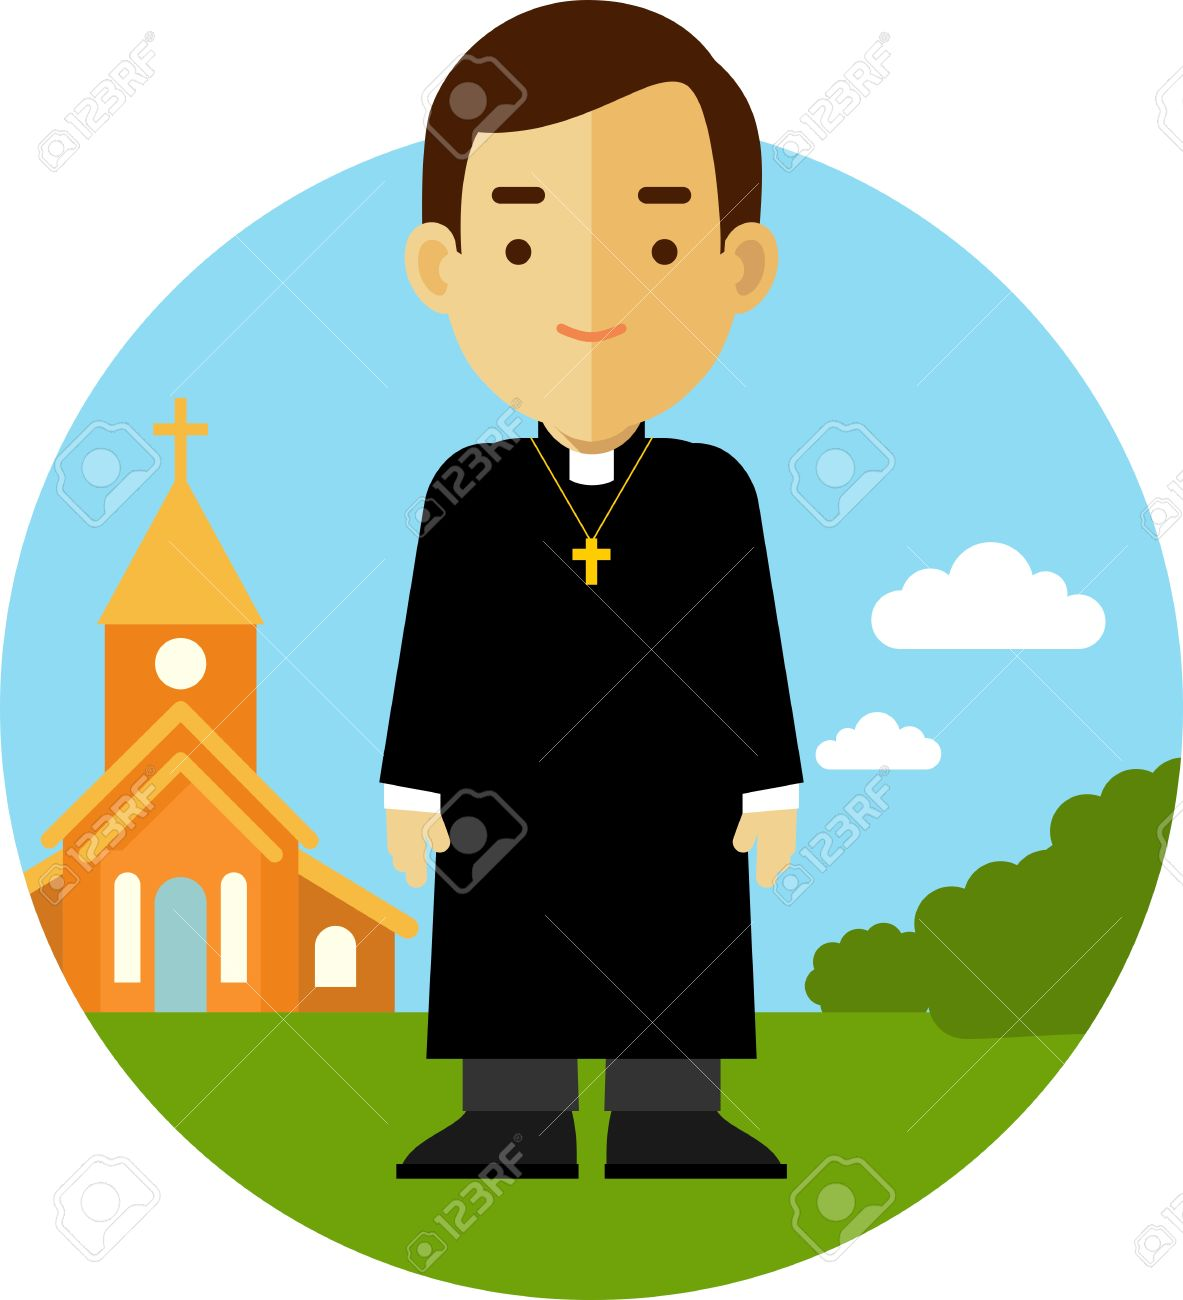 1183x1300 2,189 Catholic Priest Stock Illustrations, Cliparts And Royalty